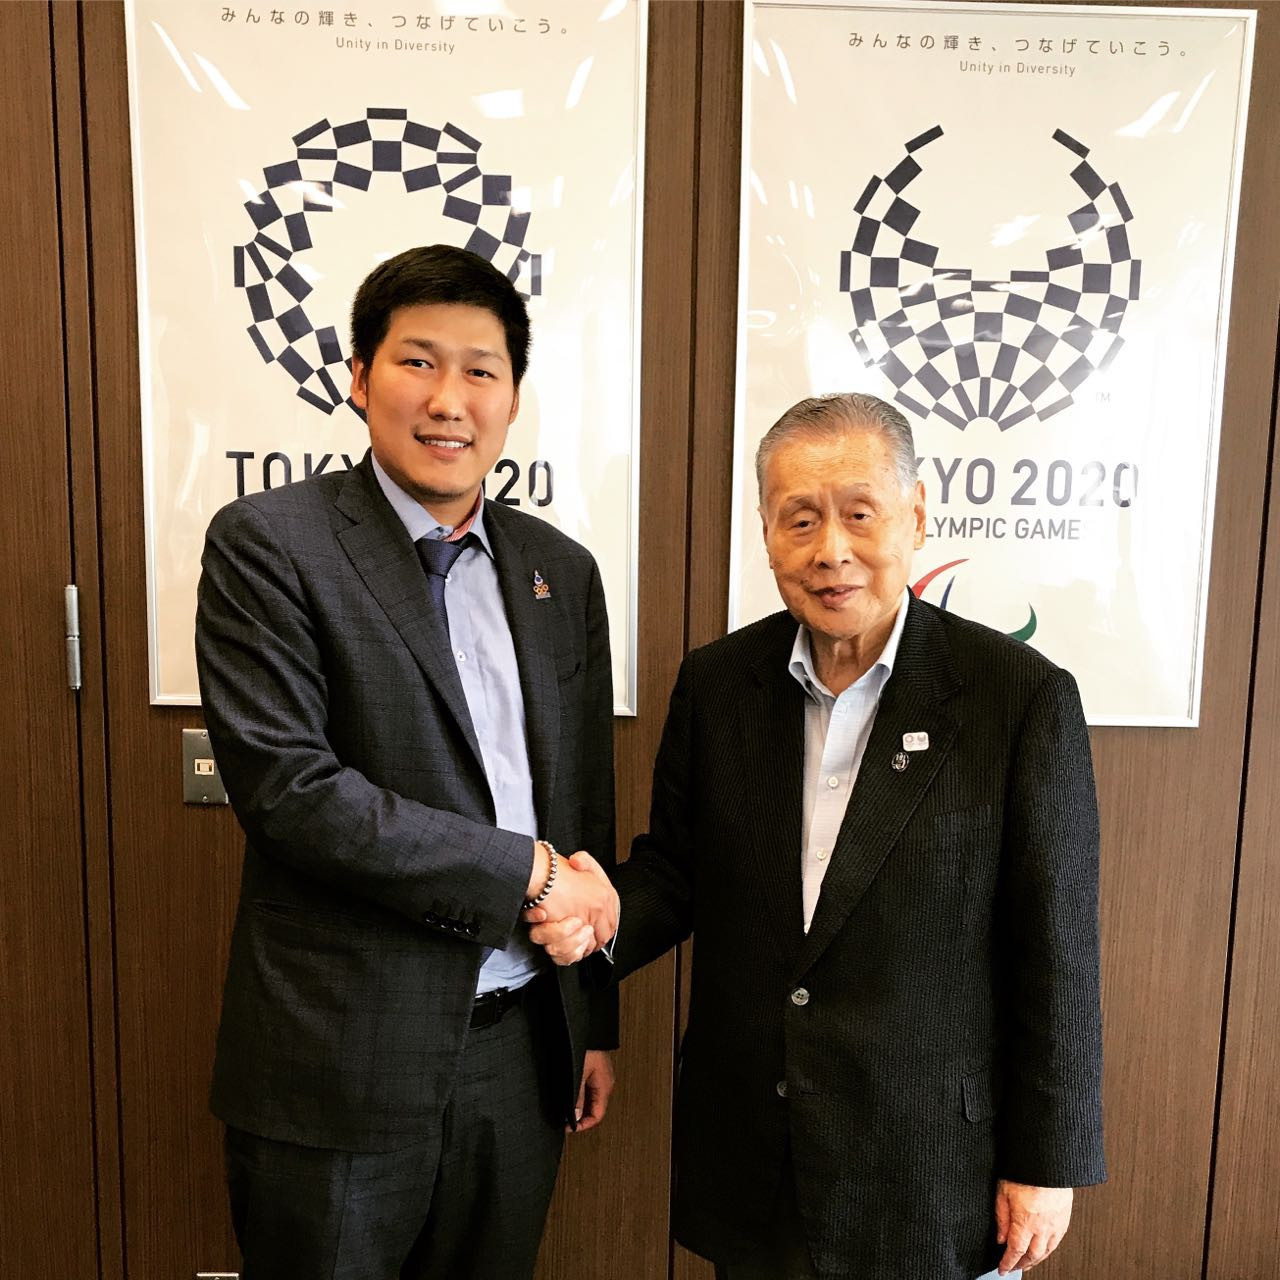 Mongolia set to have first Olympic House at Tokyo 2020